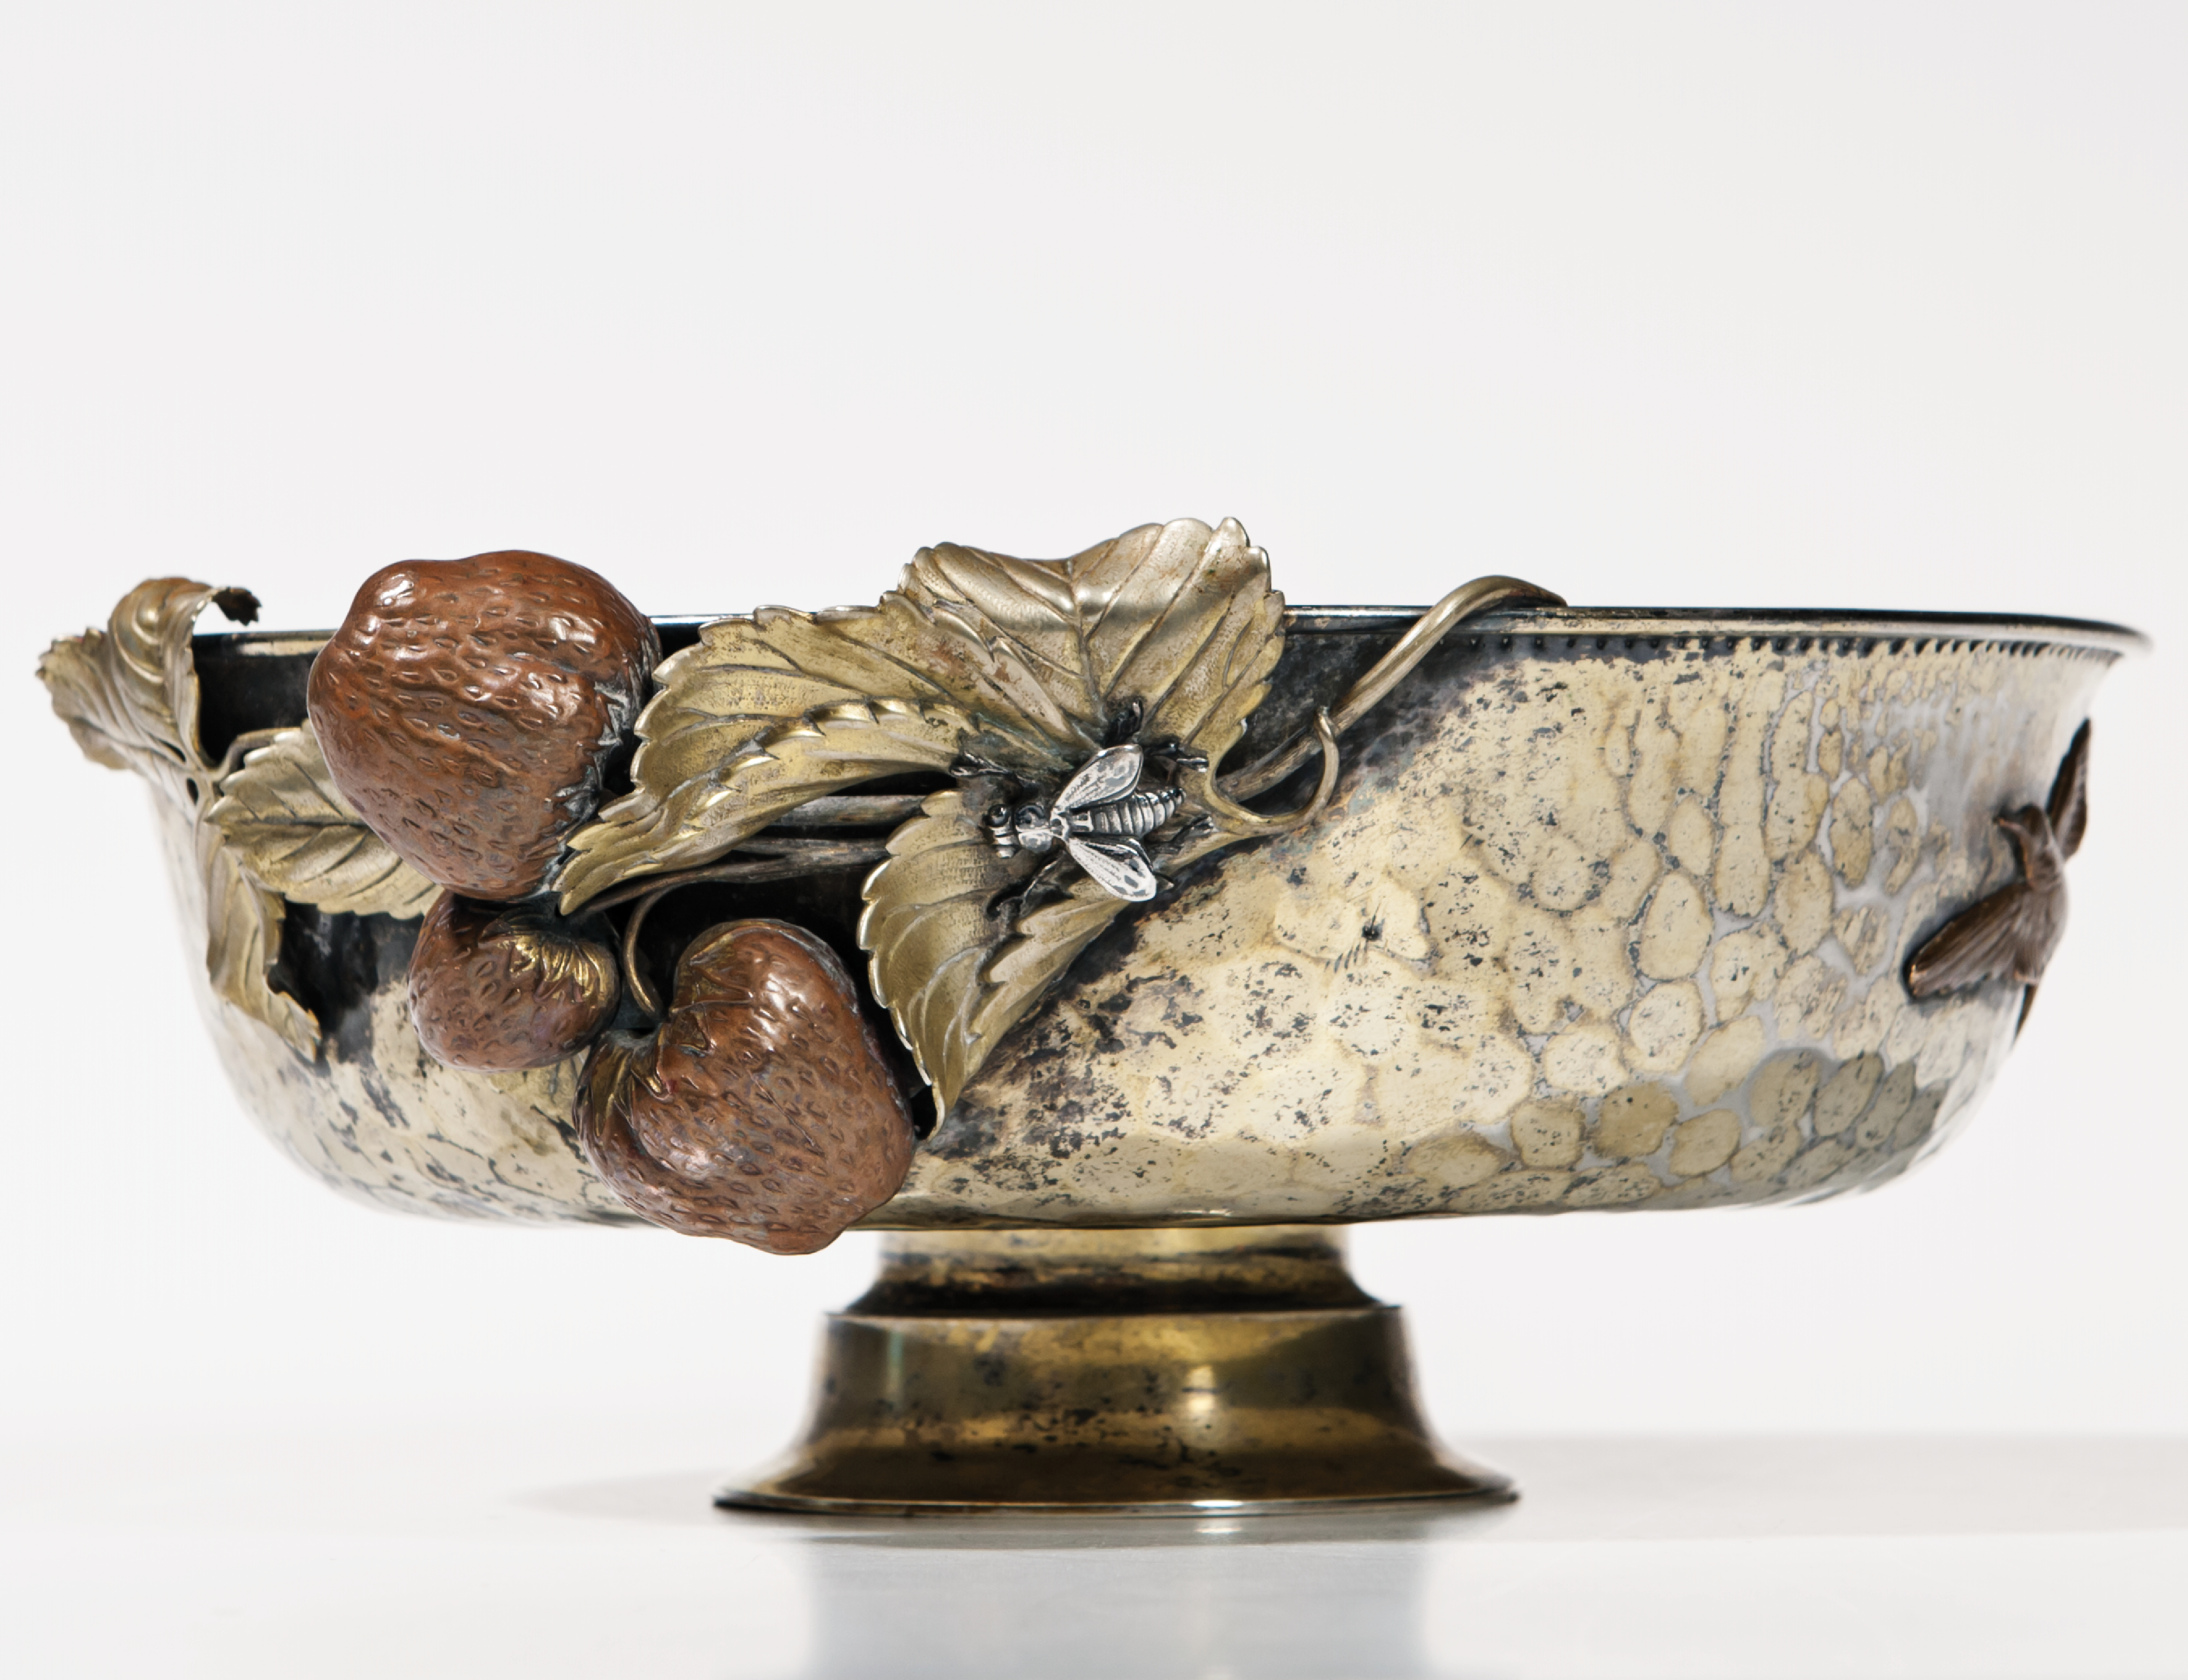 Gorham Sterling Silver and Mixed Metal Bowl (Estimate: $1,500-2,500)